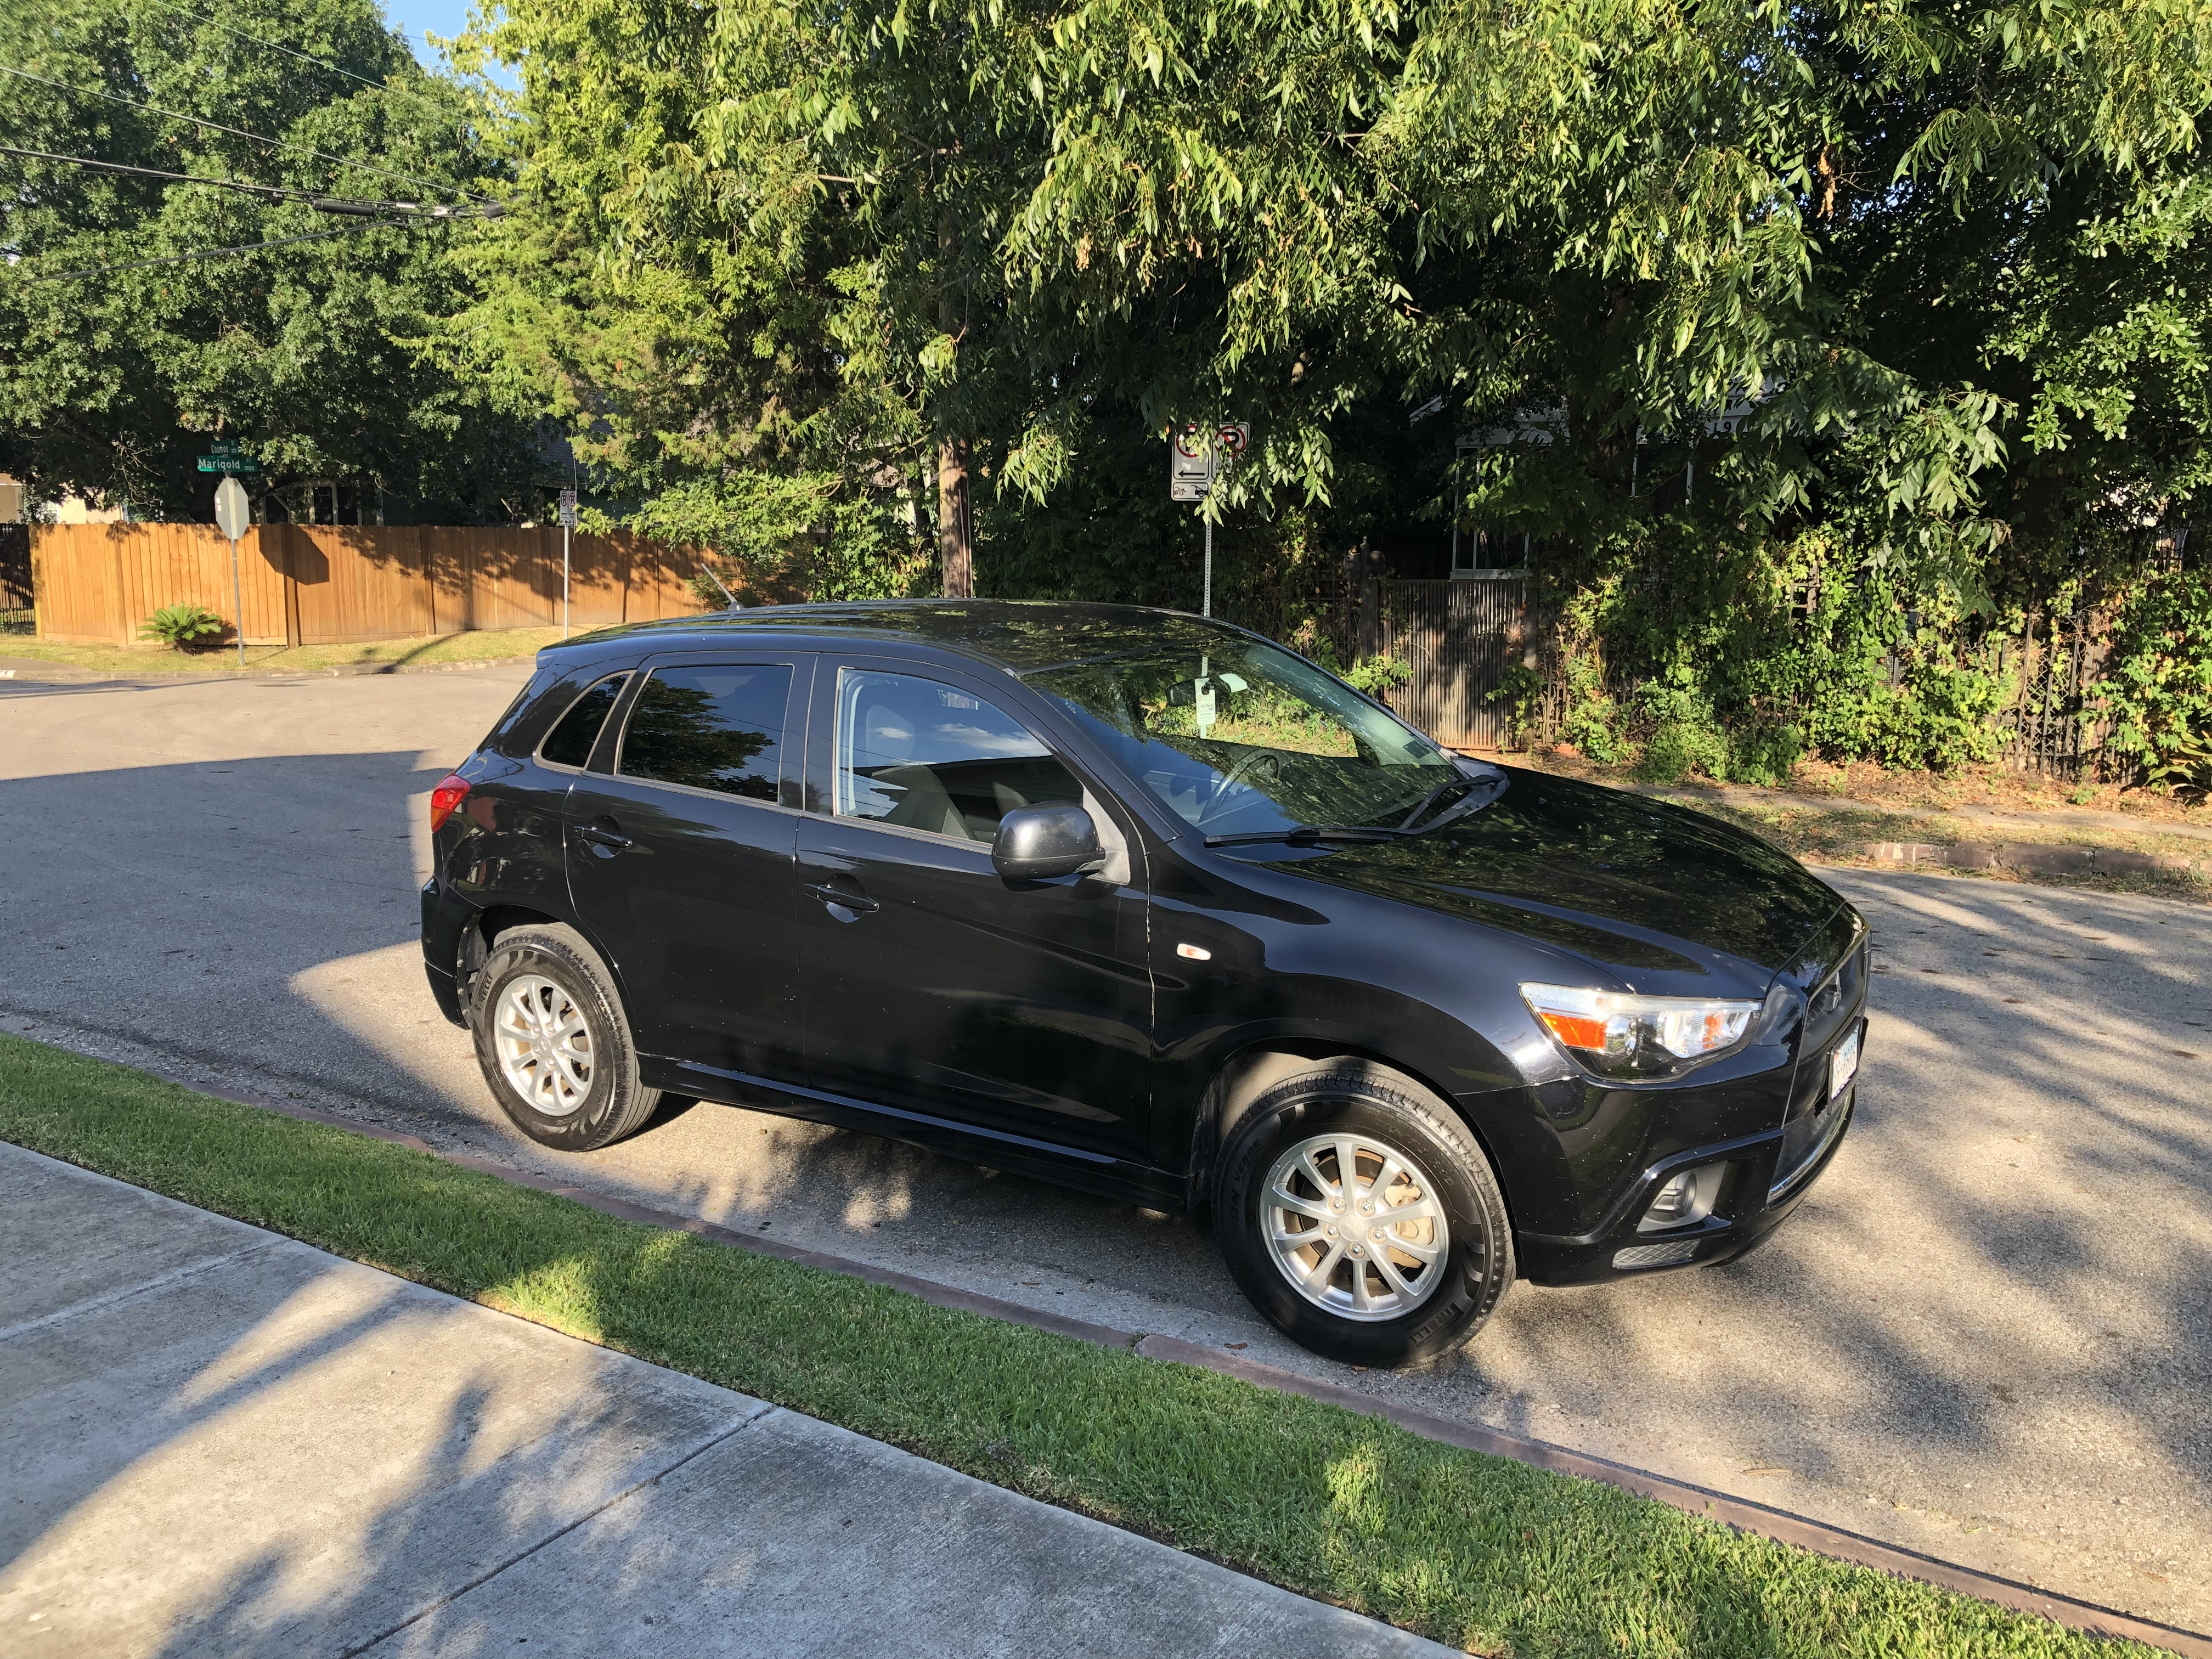 Used 2011 Mitsubishi Outlander Sport For Sale in Houston, TX